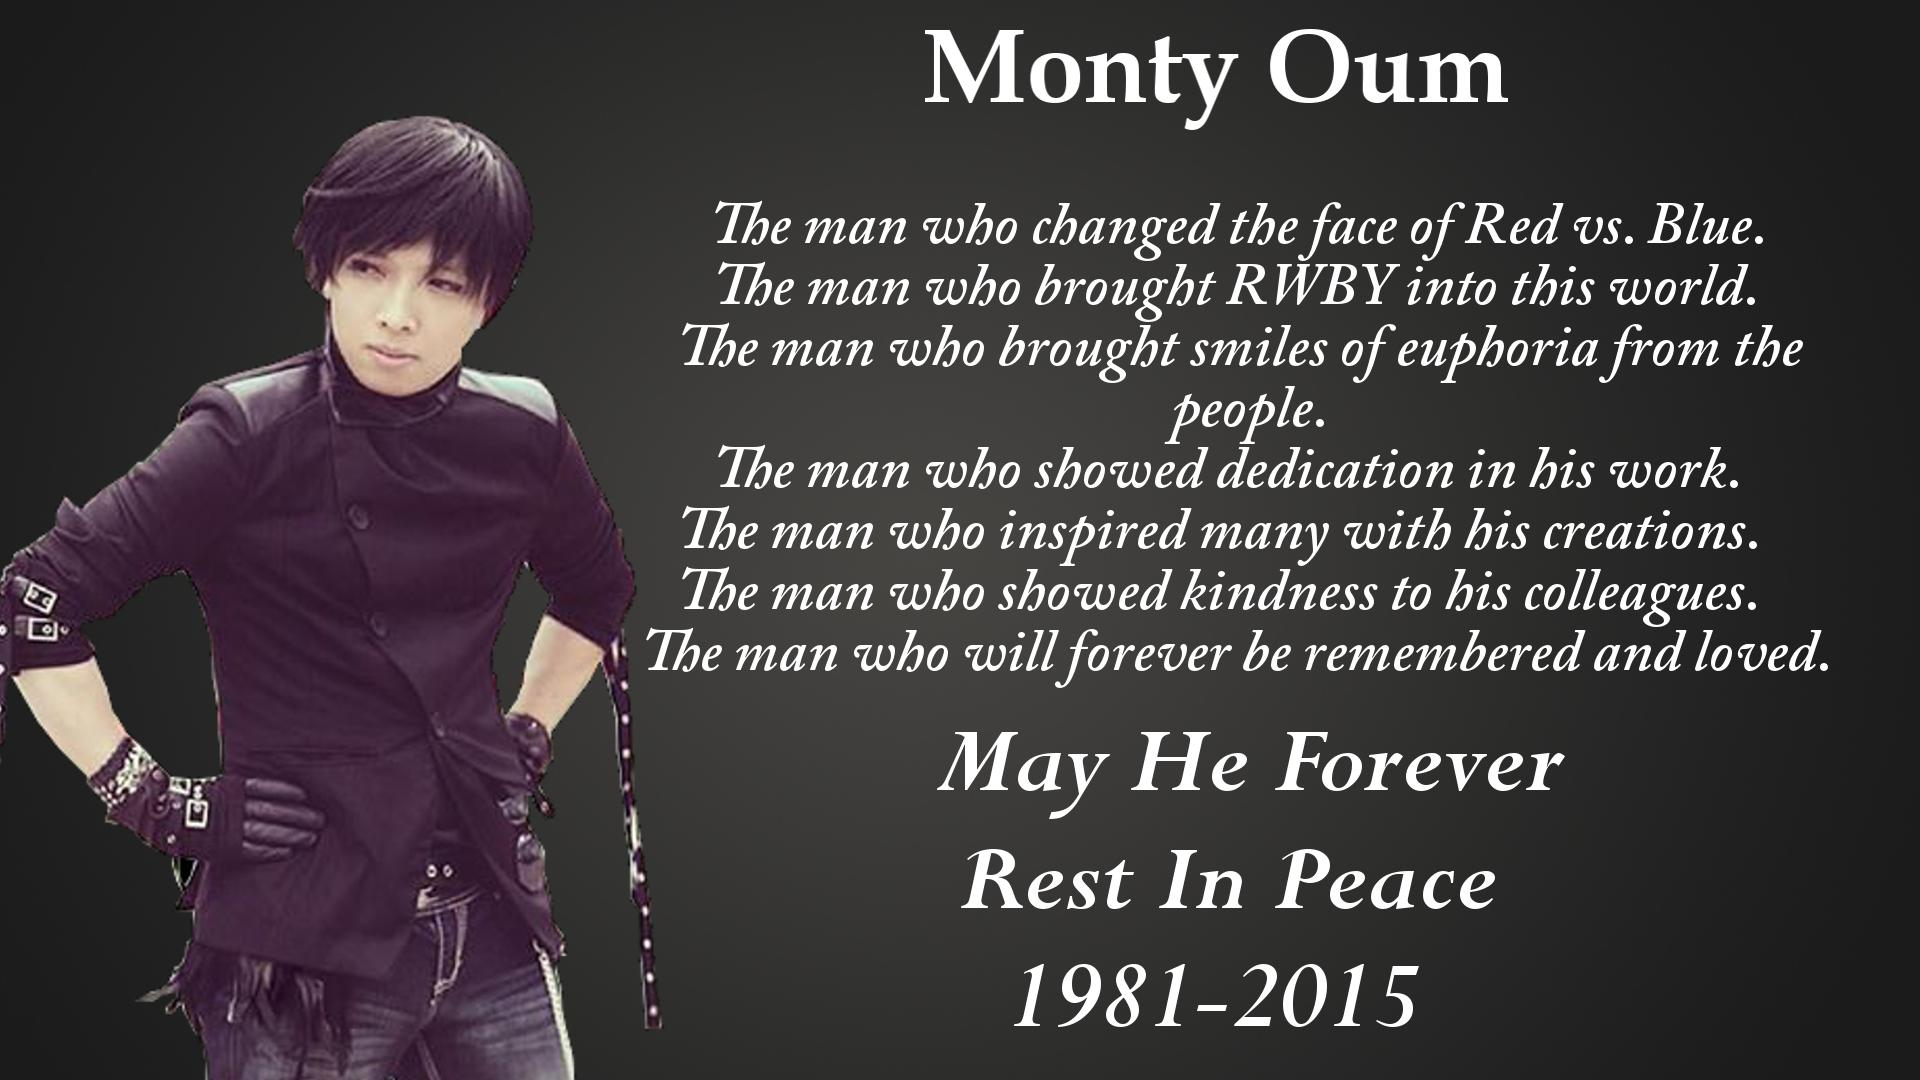 Bruce Lee Water >> Monty Oum Saving Time Quotes. QuotesGram